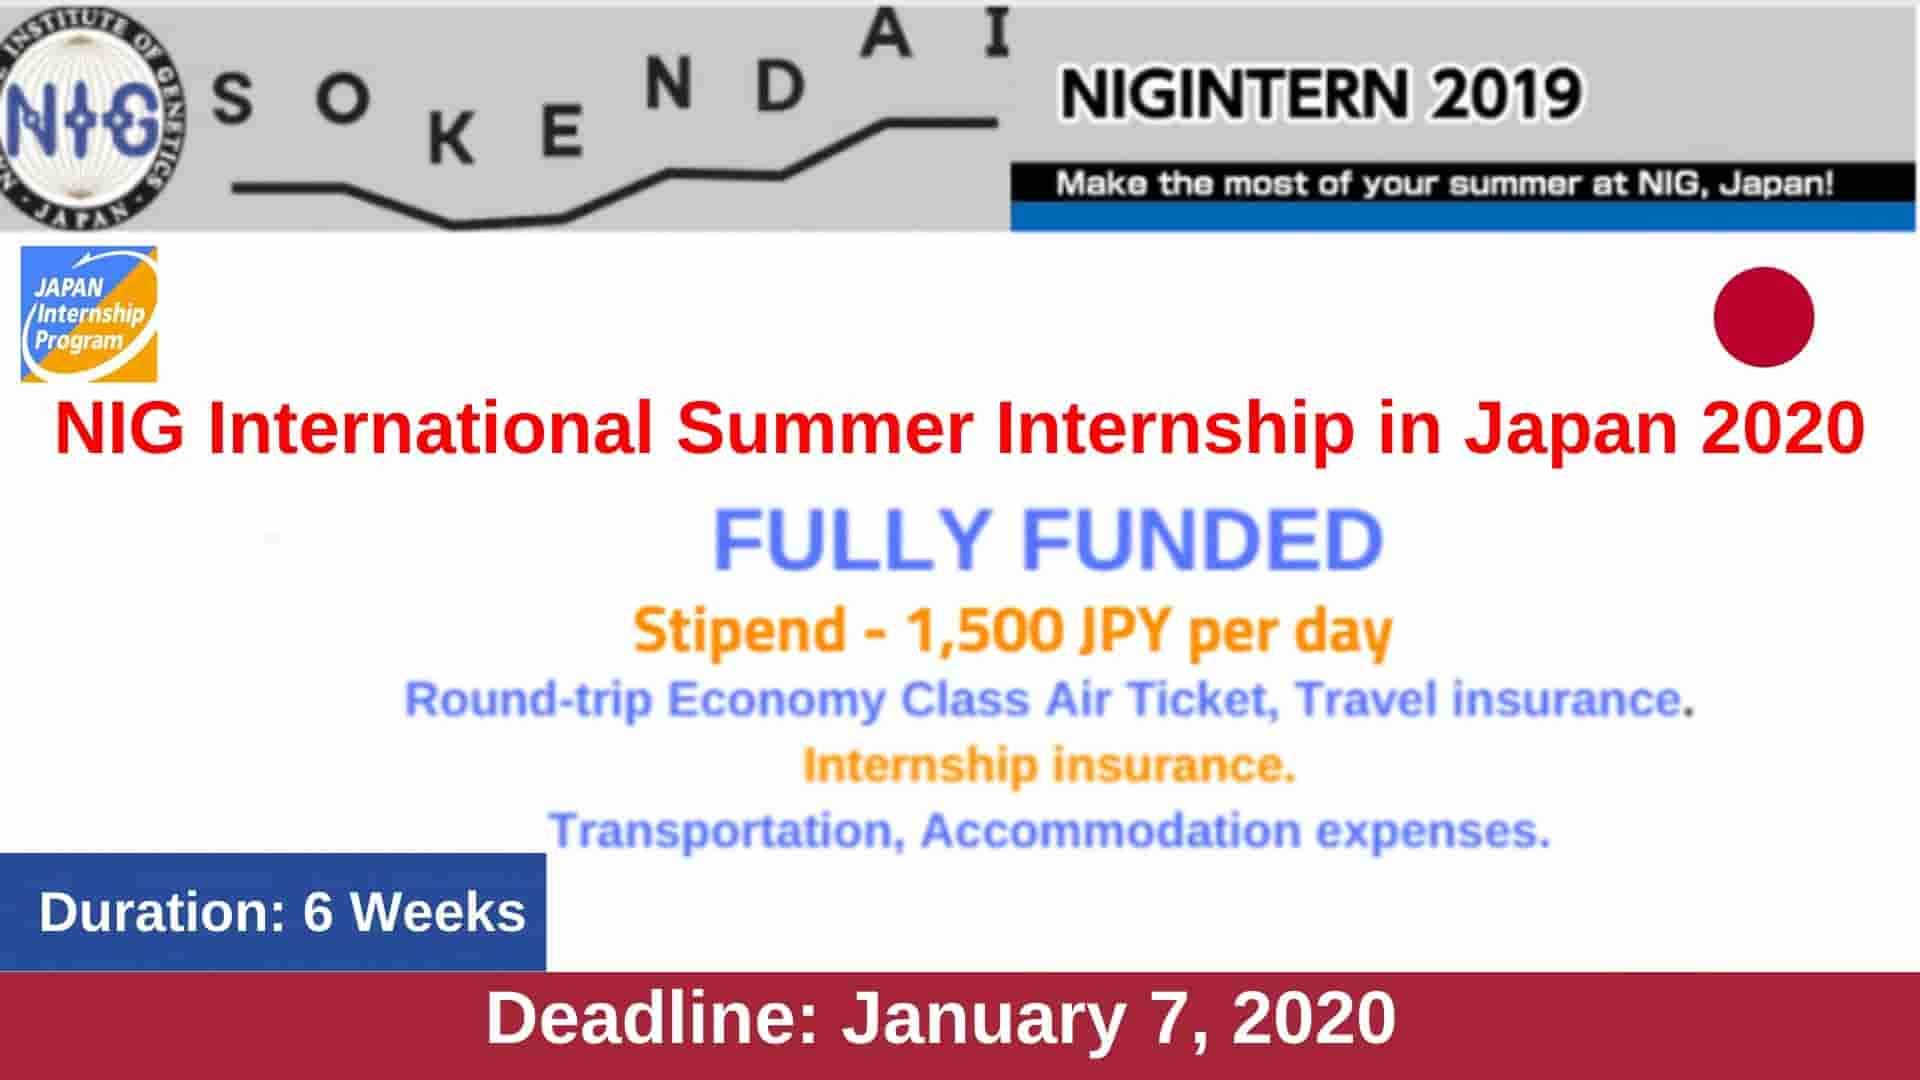 Intern Summer 2020.Nig Summer Internship In Japan 2020 Fully Funded